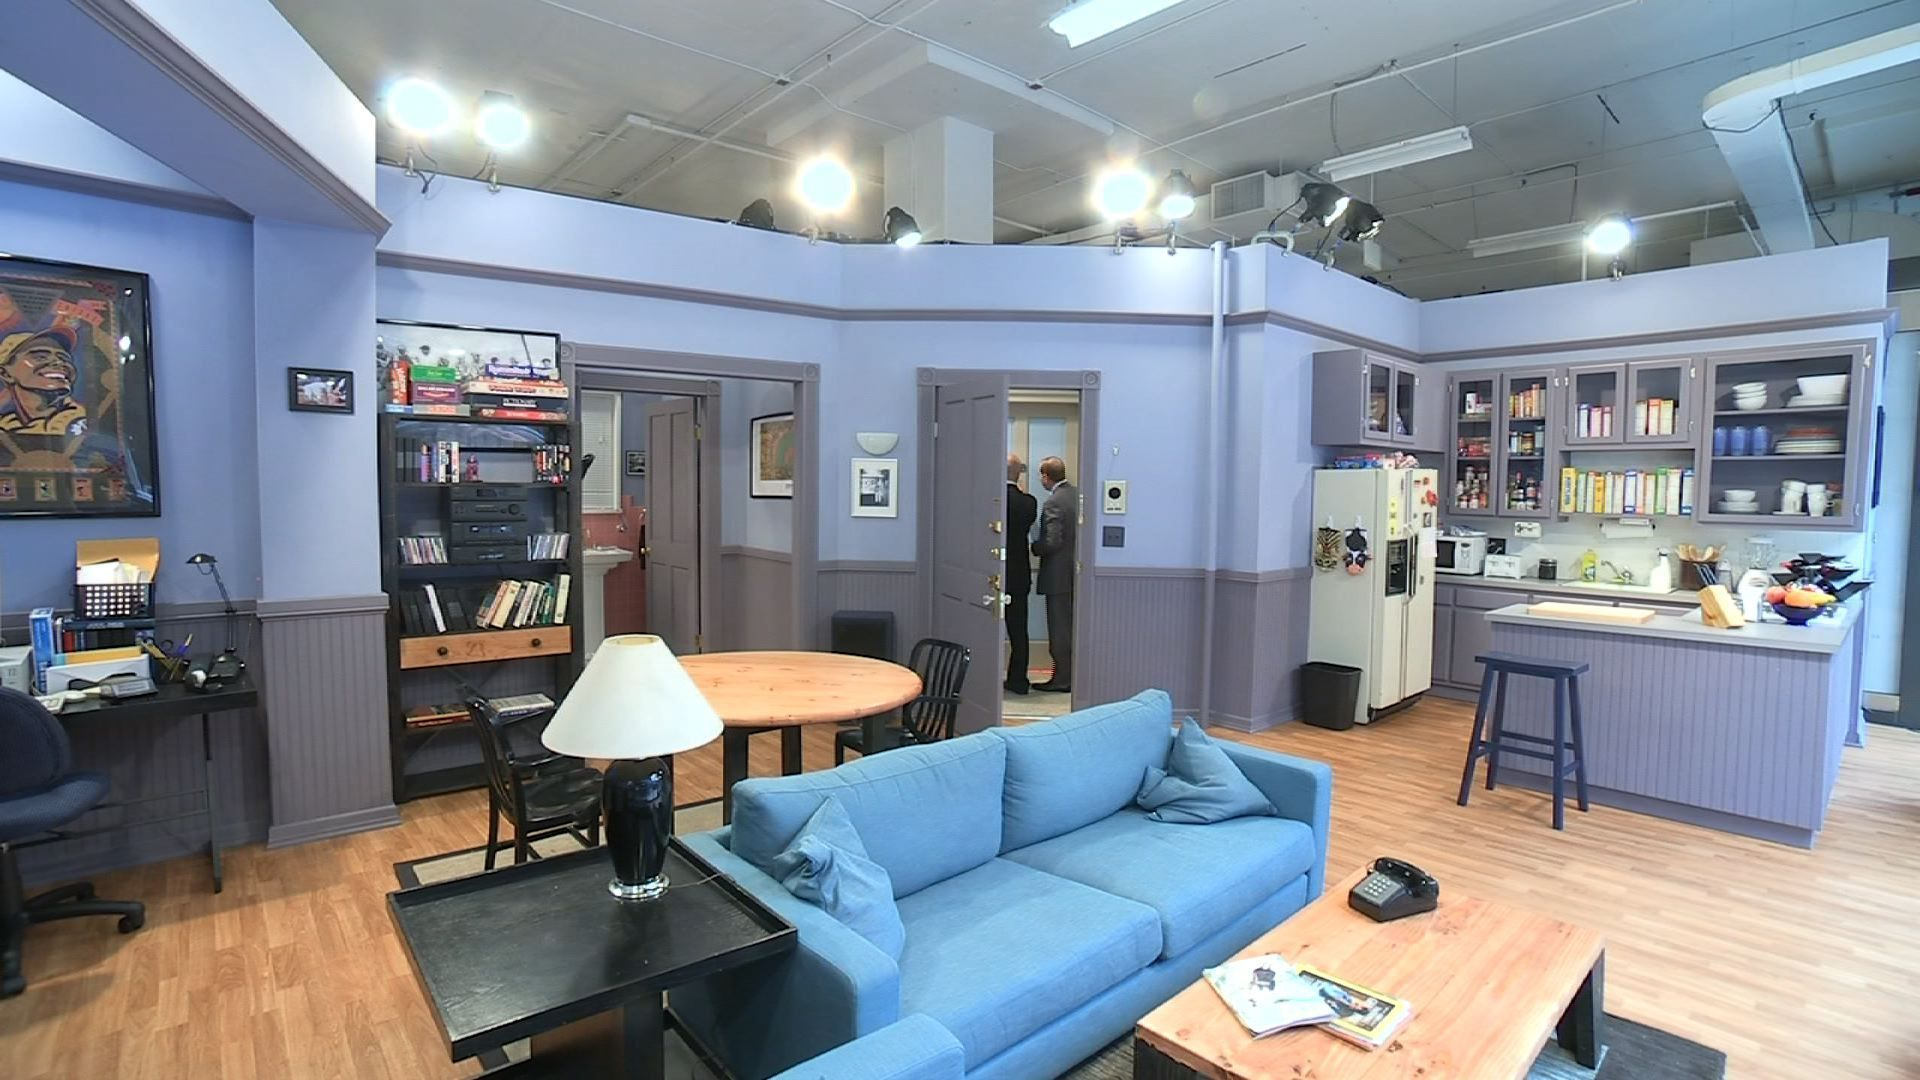 Hulu Recreates Seinfeld Apartment As It Releases Episodes Chicago Tribune